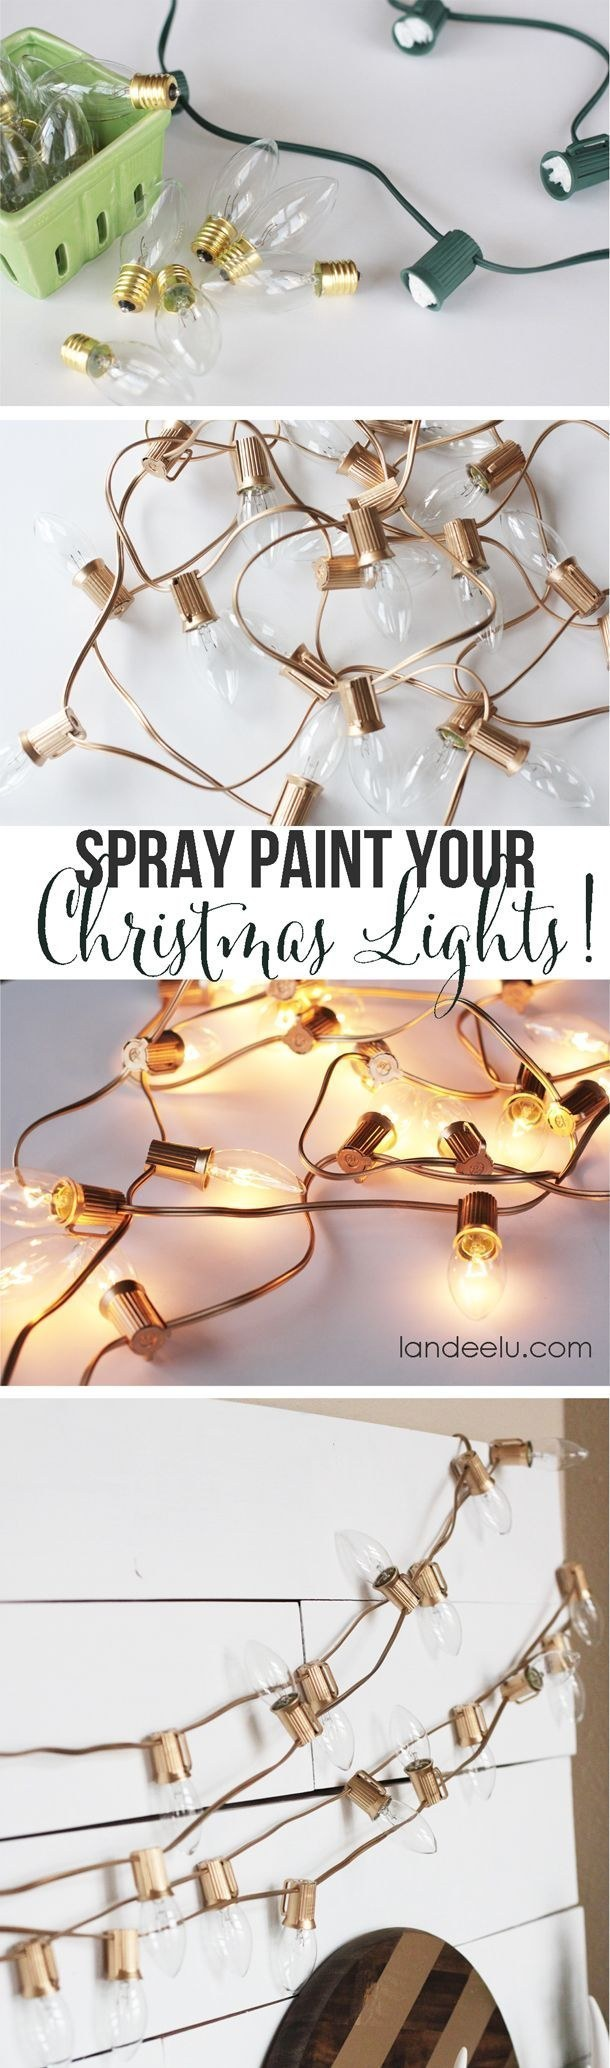 33 awesome diy string light ideas for Room decor you can make